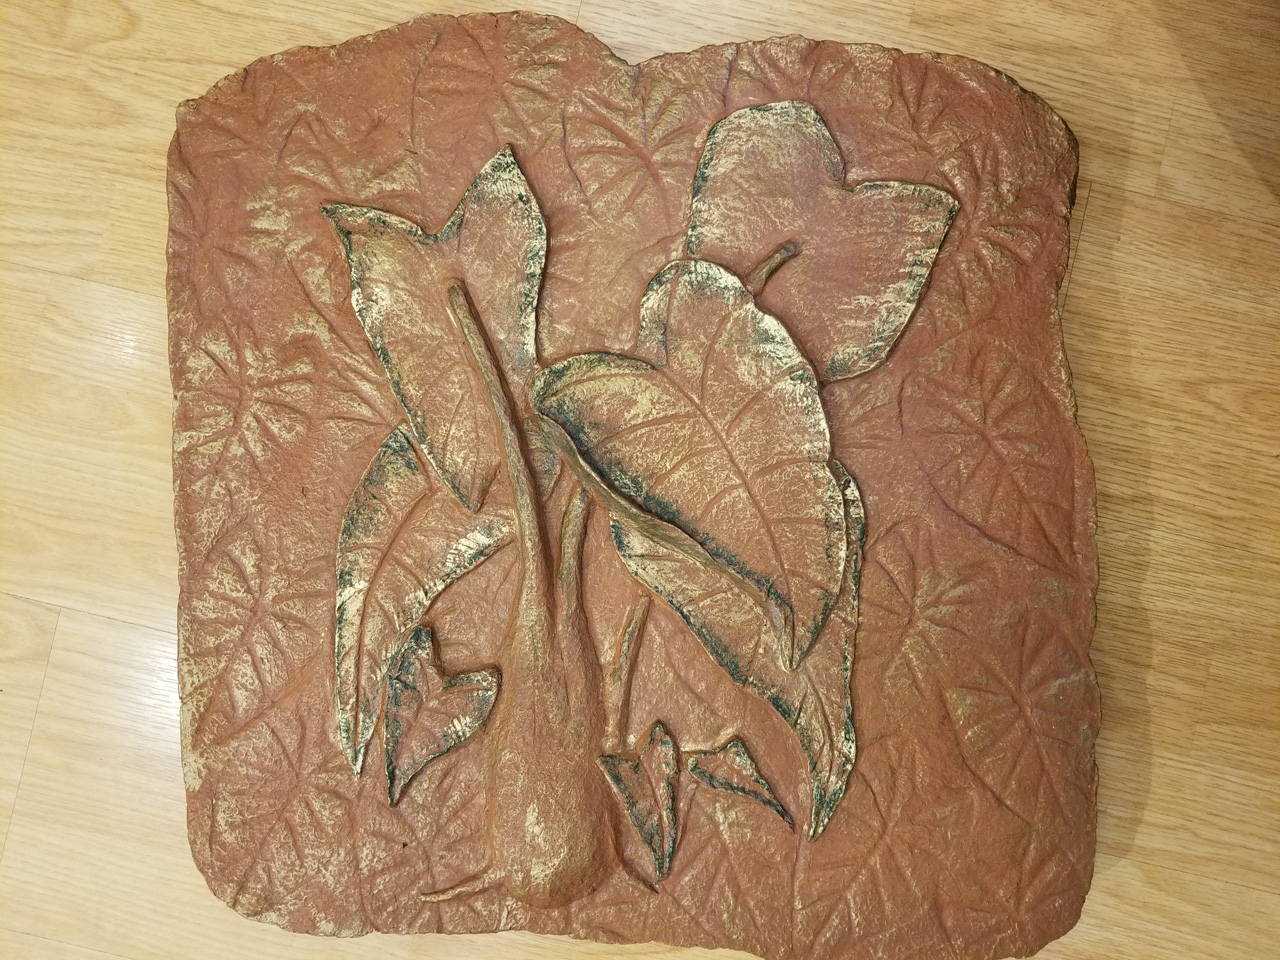 Taro by Kalei Engel depicting taro leaves in Hawaiian red clay and paper medium with gold accents